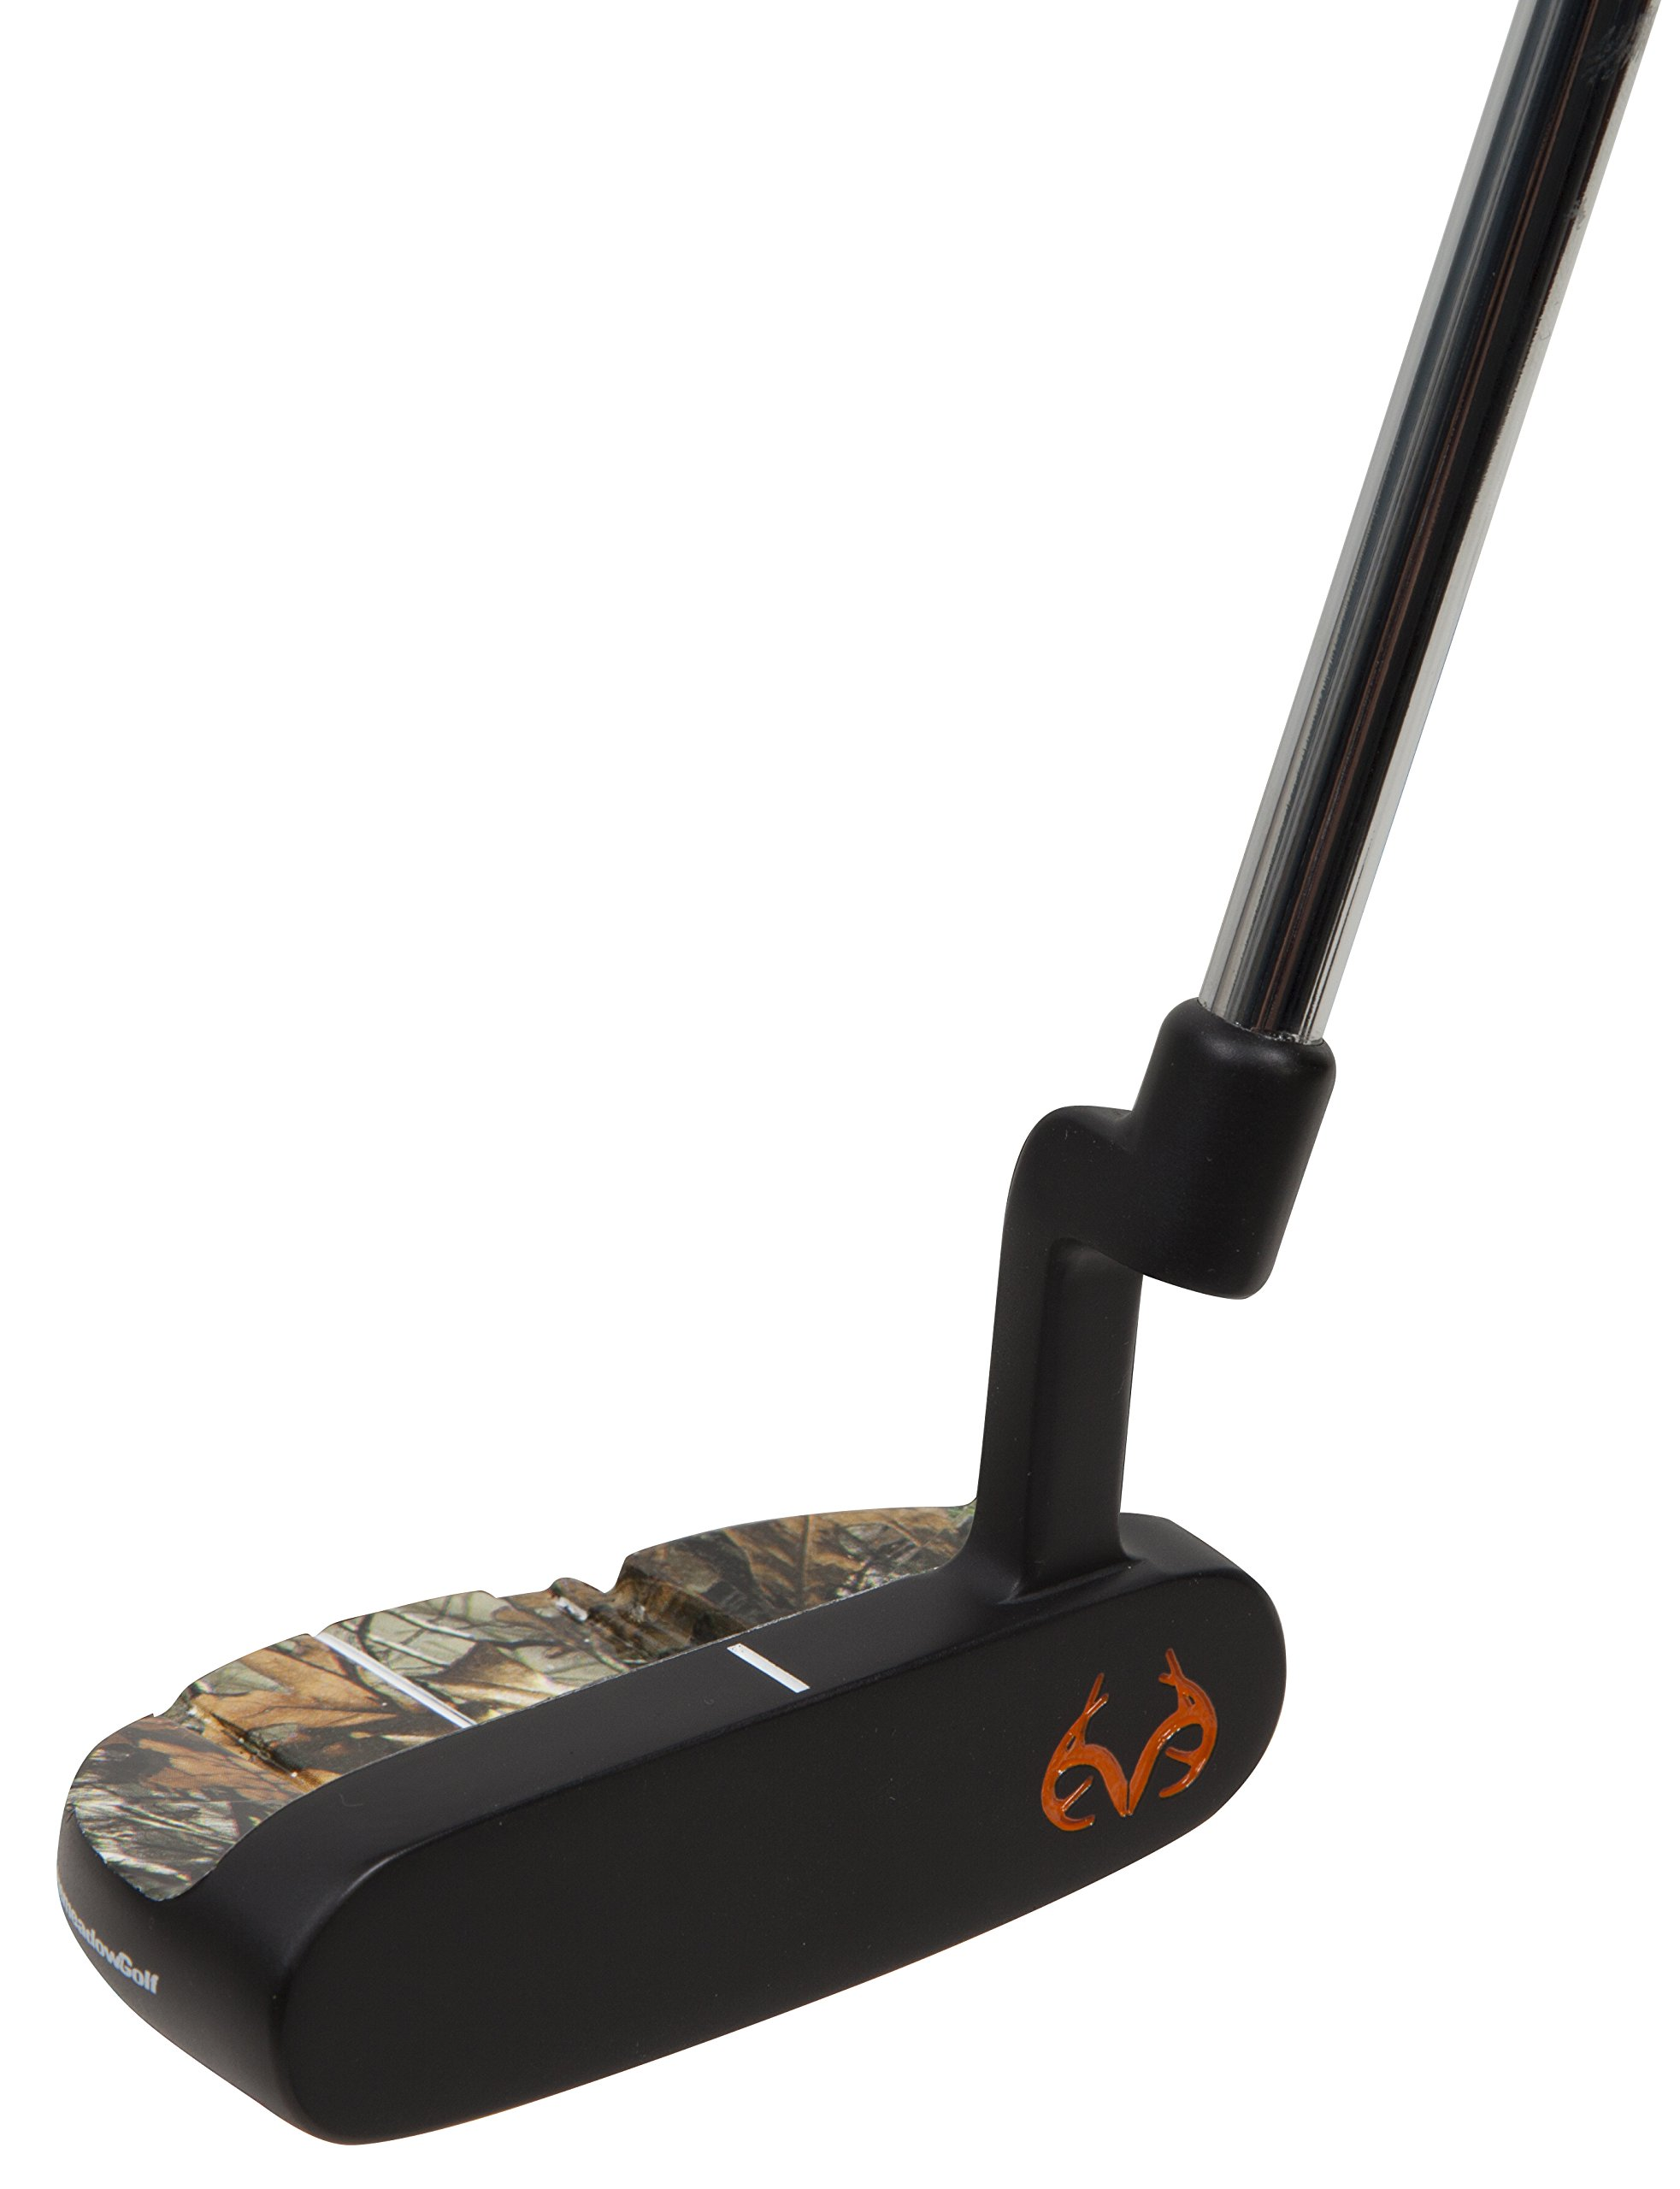 Pinemeadow Golf Realtree Xtra Putter, Right Hand, 34-inch, Steel, 25-Degree by Pinemeadow Golf (Image #2)